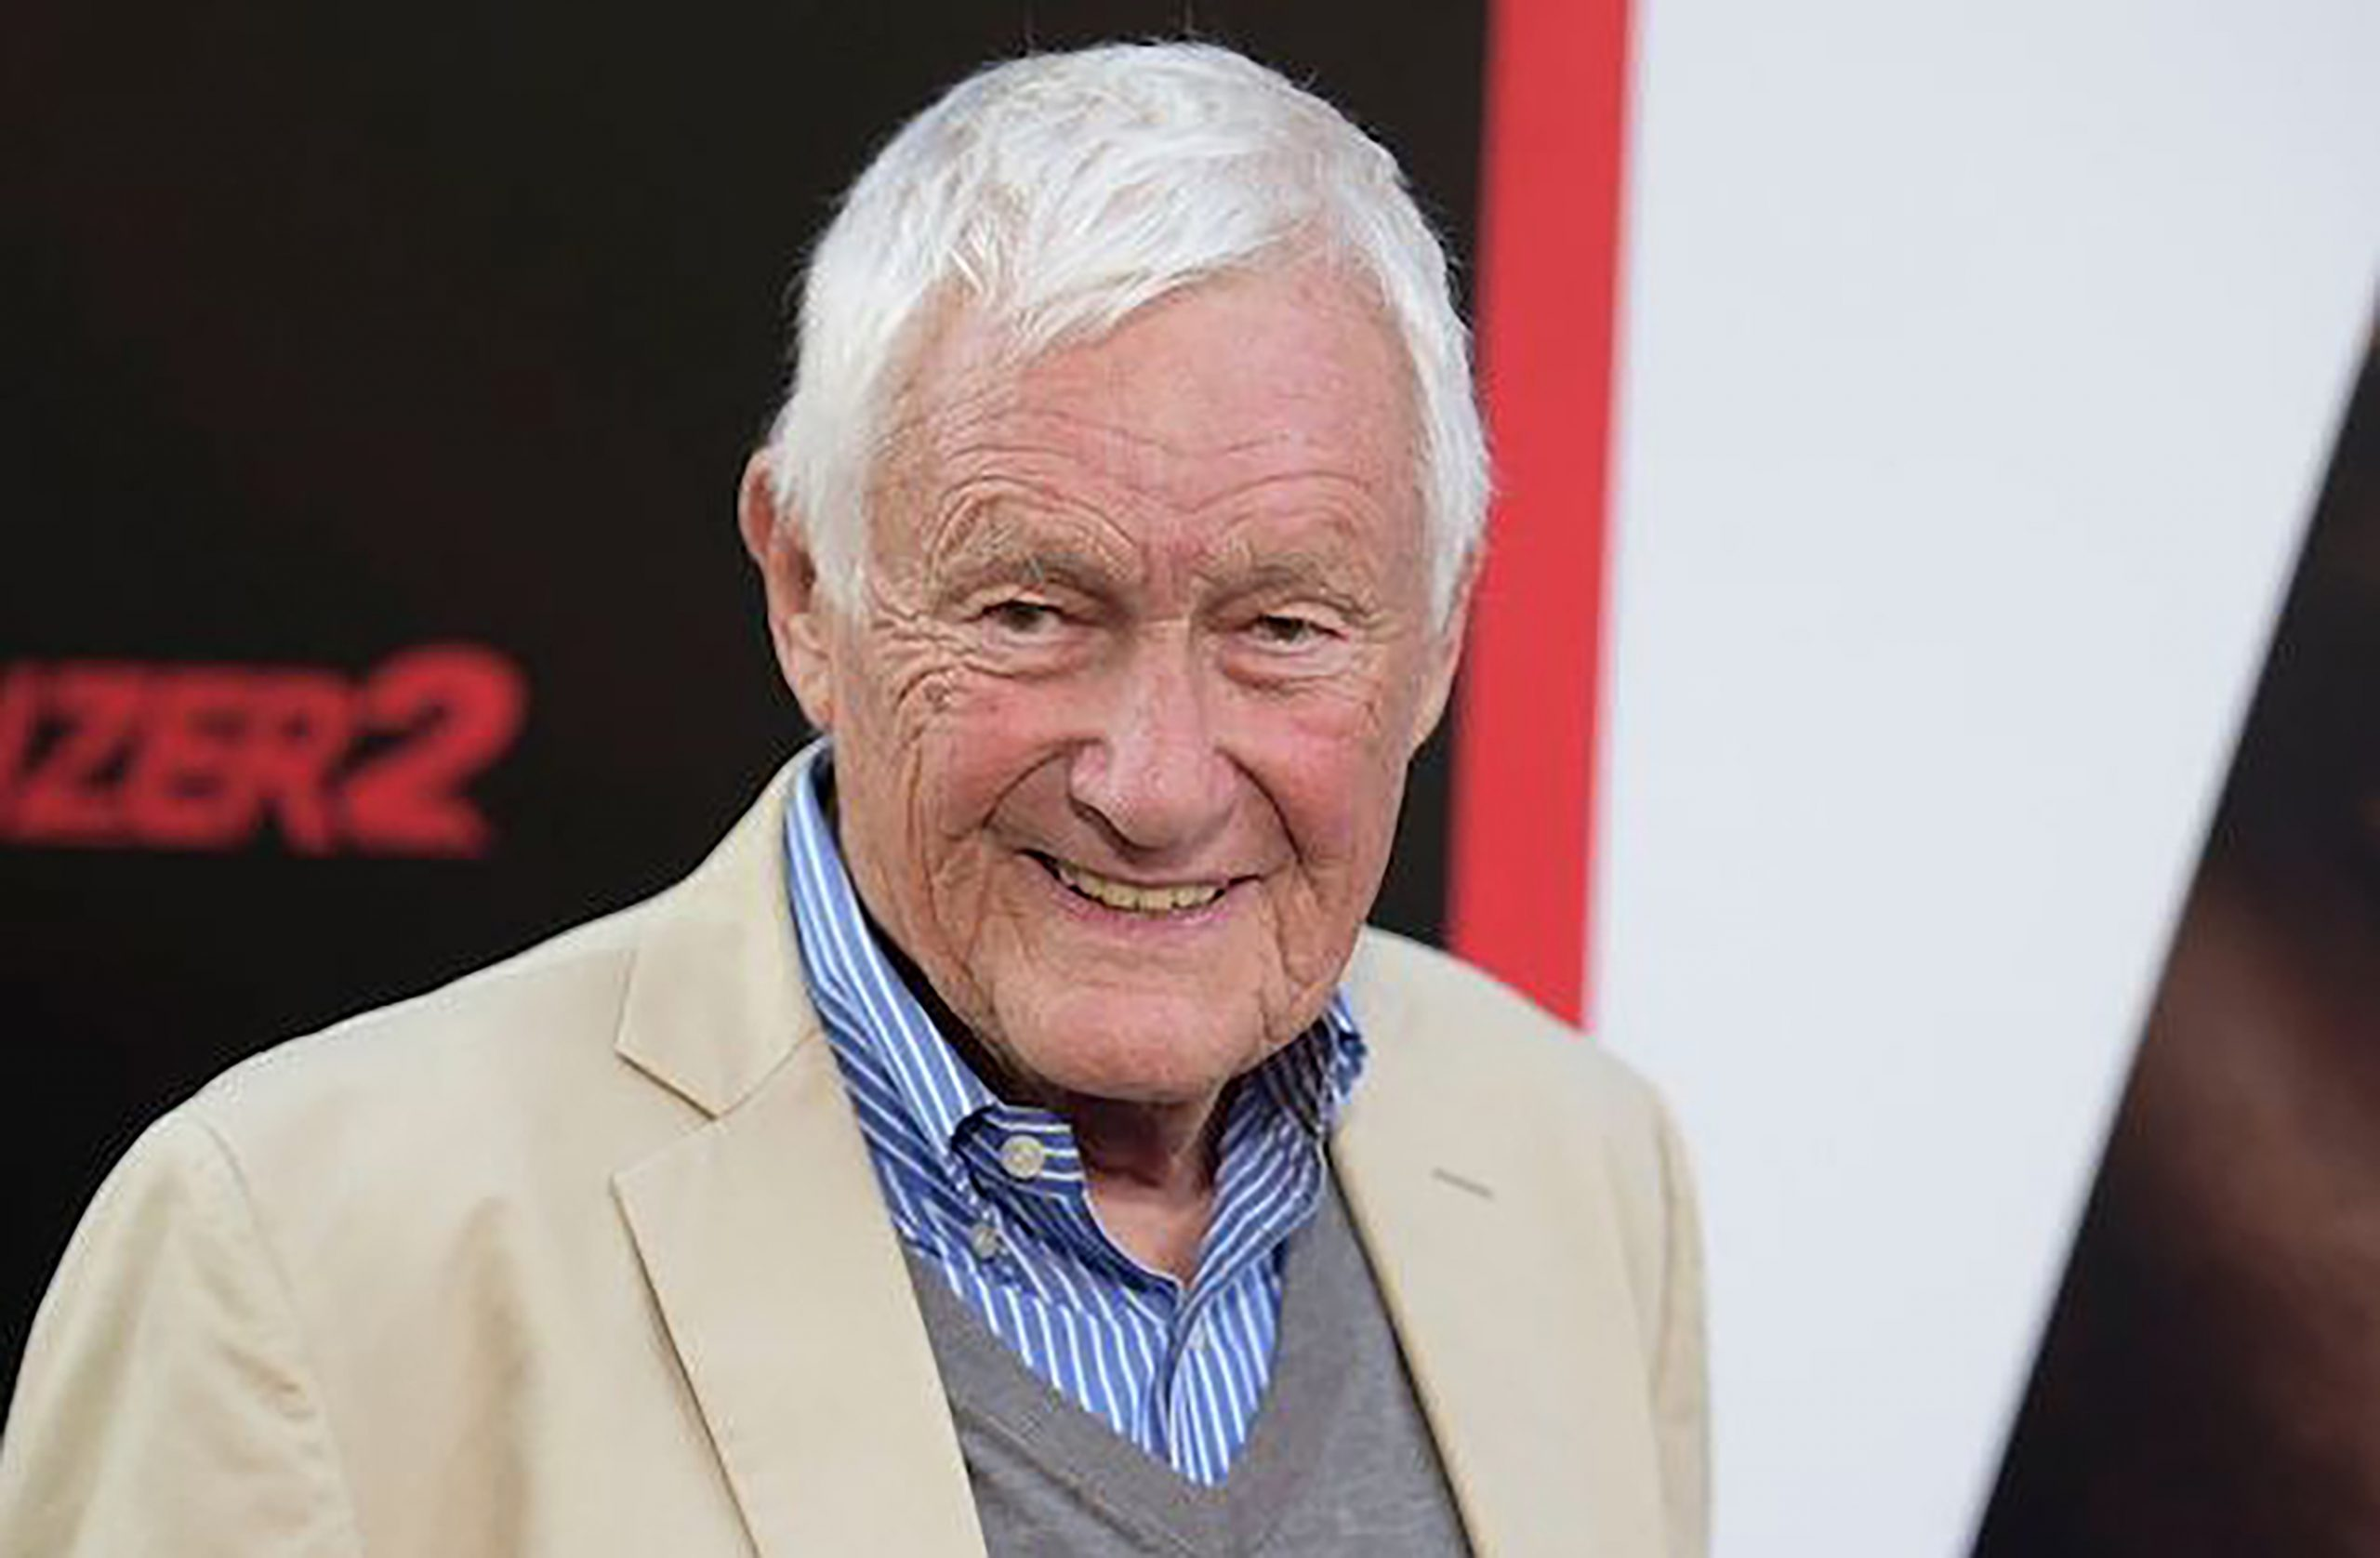 Actor-comedian Orson Bean, 91, hit and killed by car in Venice